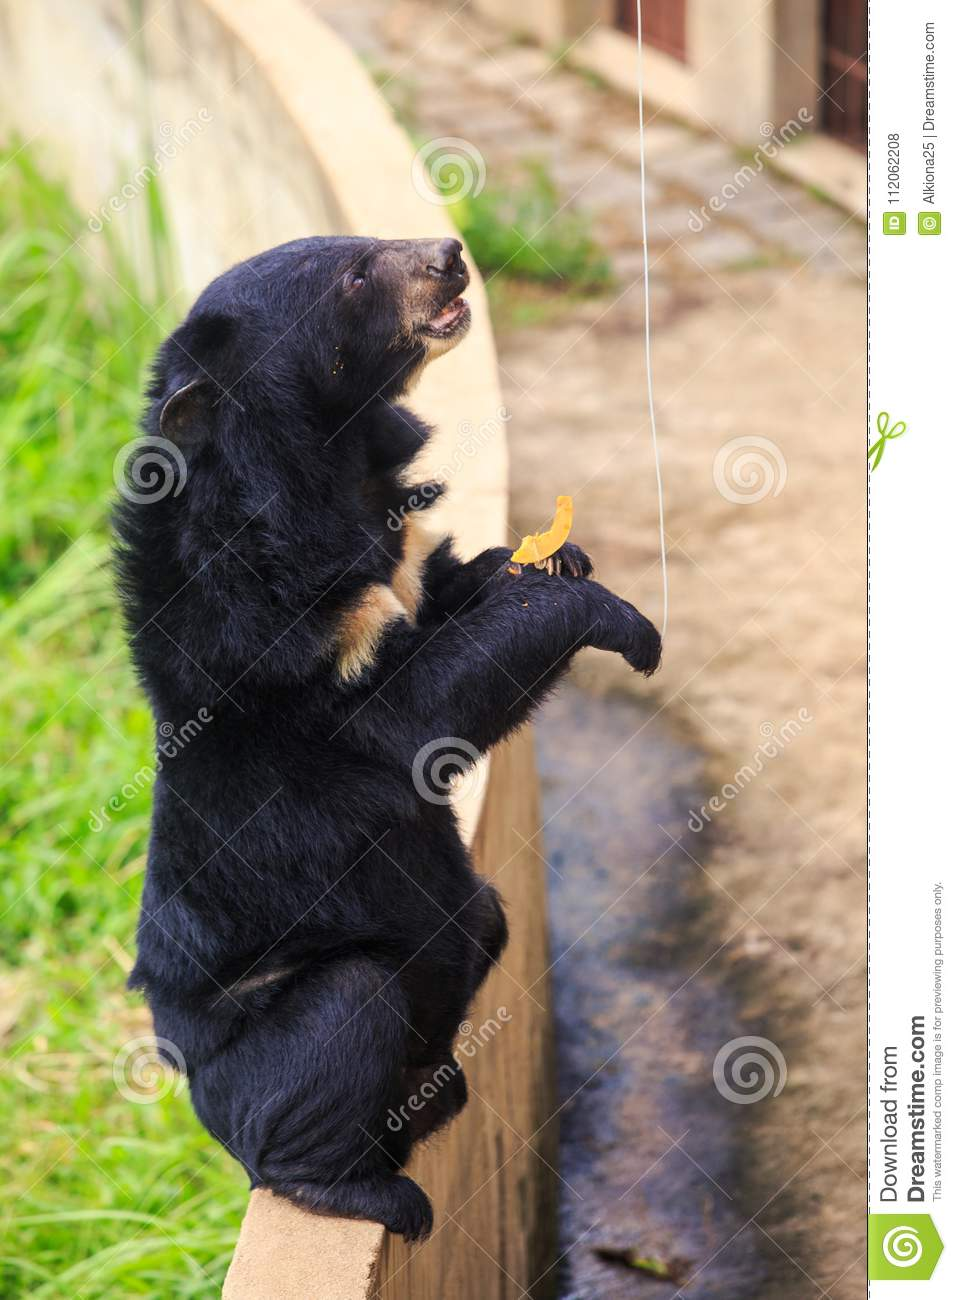 Closeup Black Bear Sits On Barrier Looks At Banana In Zoo Stock